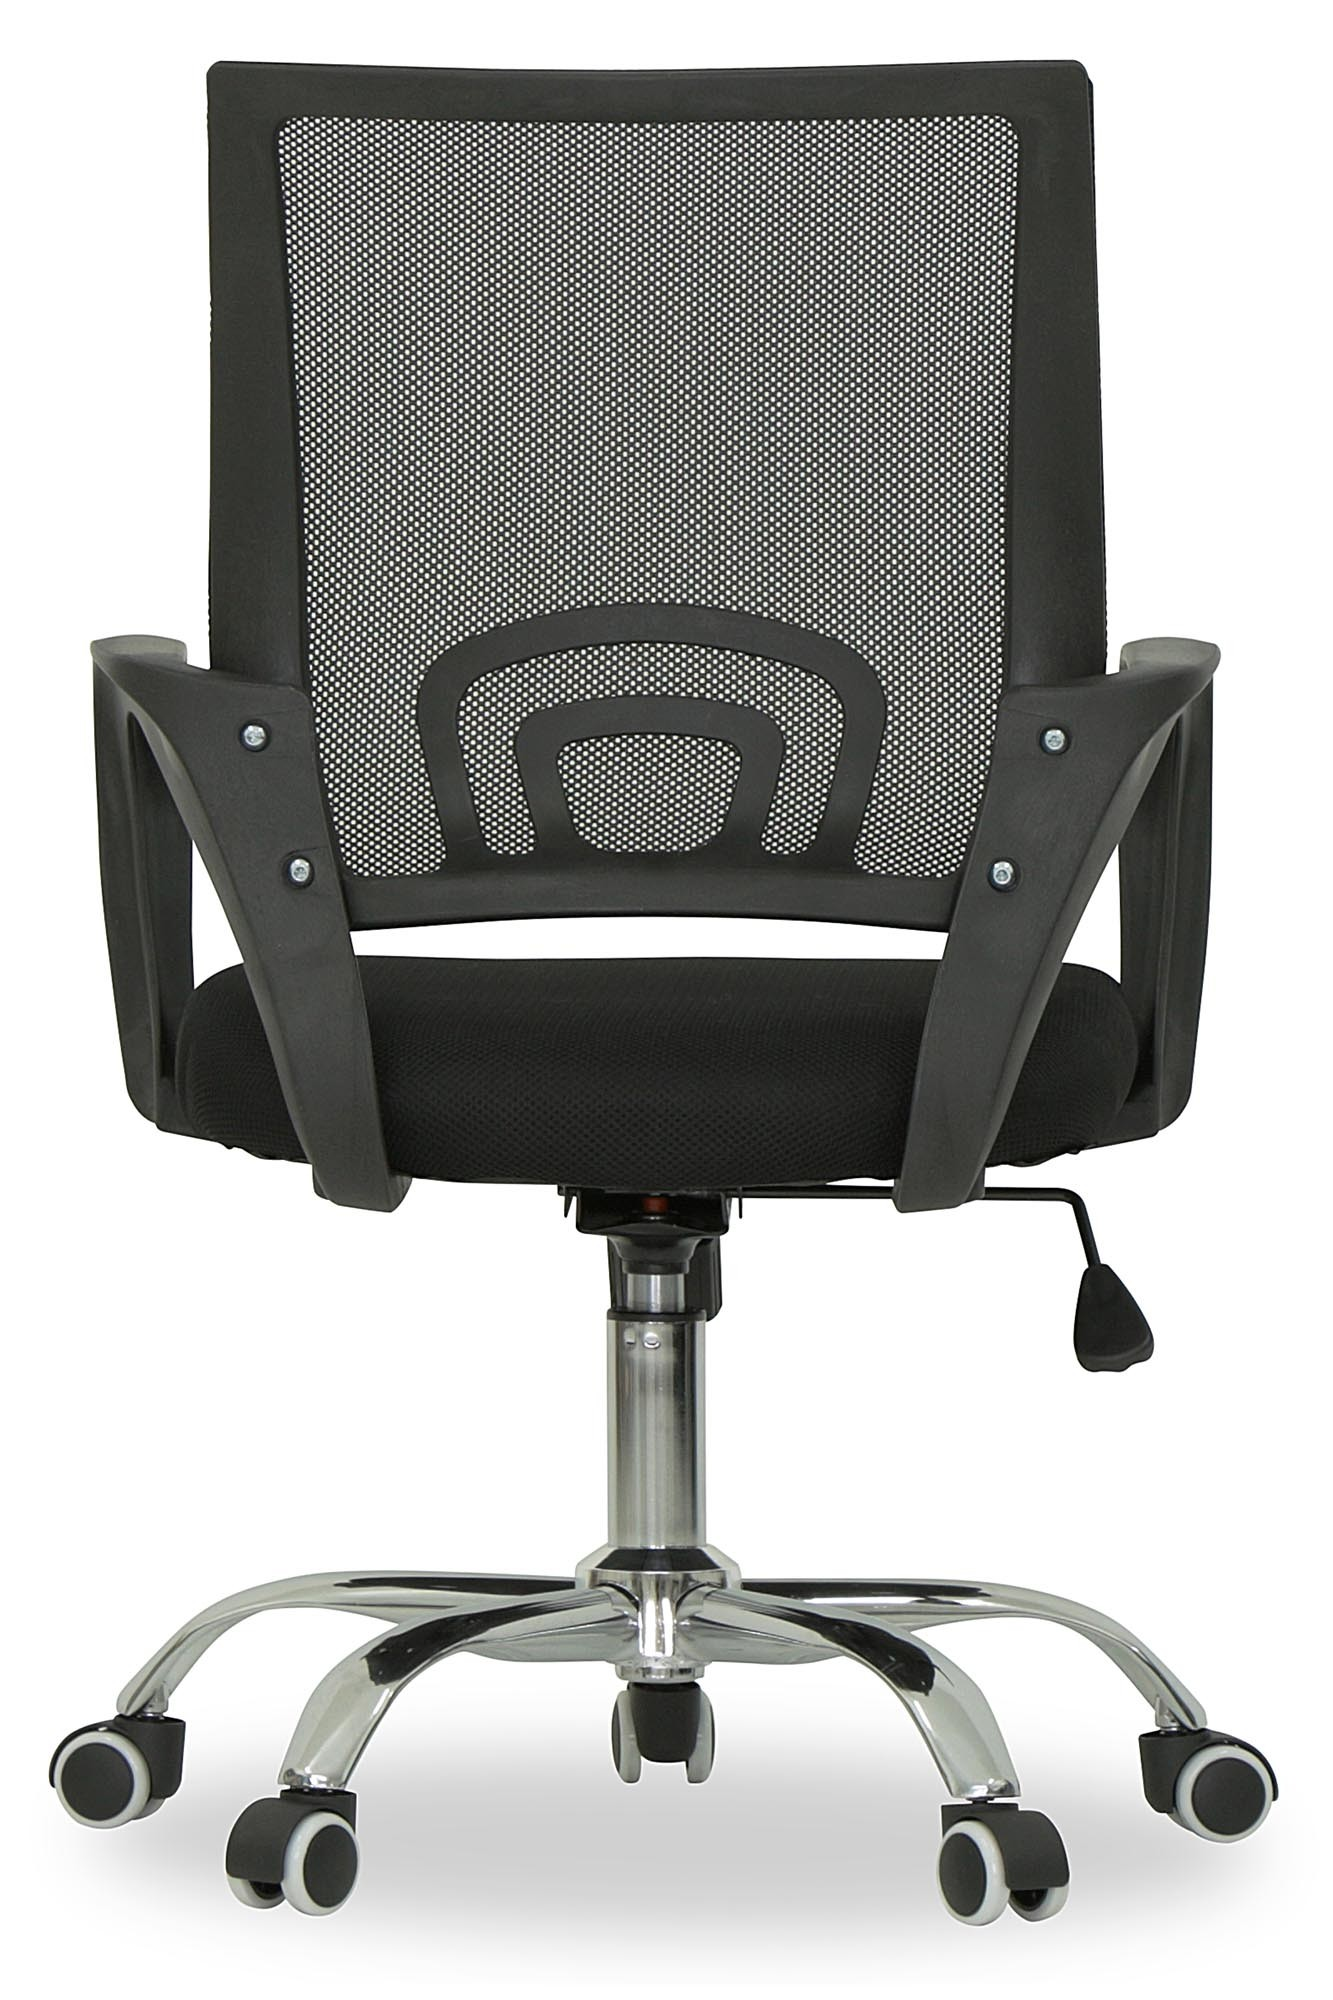 black and white office furniture. wayner office chair (black). regular price: s$89.00 black and white furniture